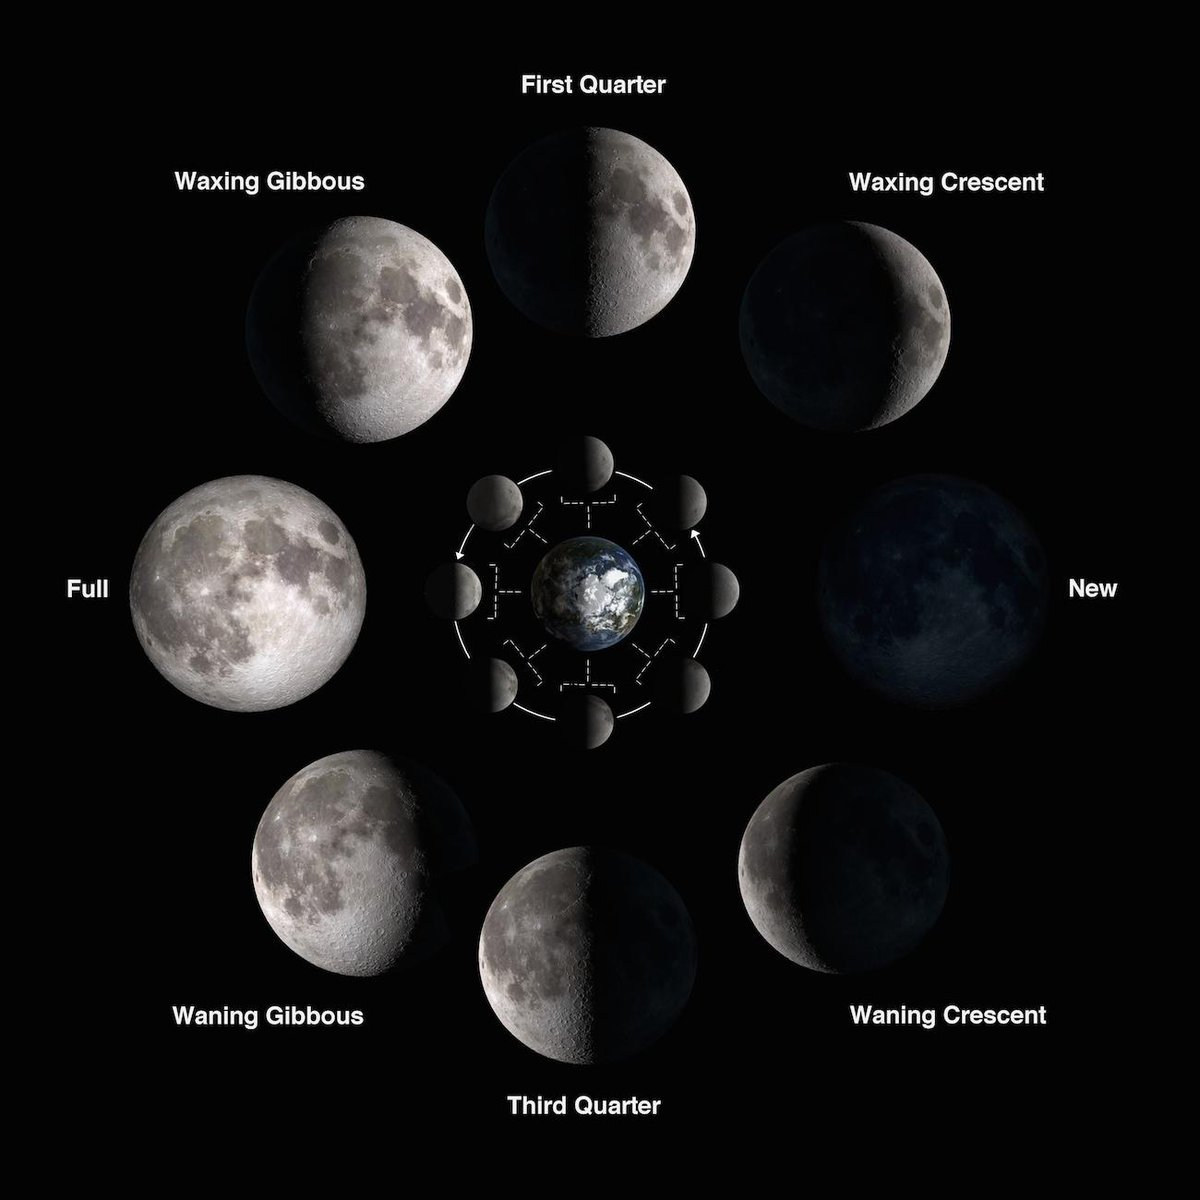 Enjoying tonight's full moon? Here's why we see the moon's phases the way we do. http://t.co/p9aKyOeFTy http://t.co/vf294kcKZ1